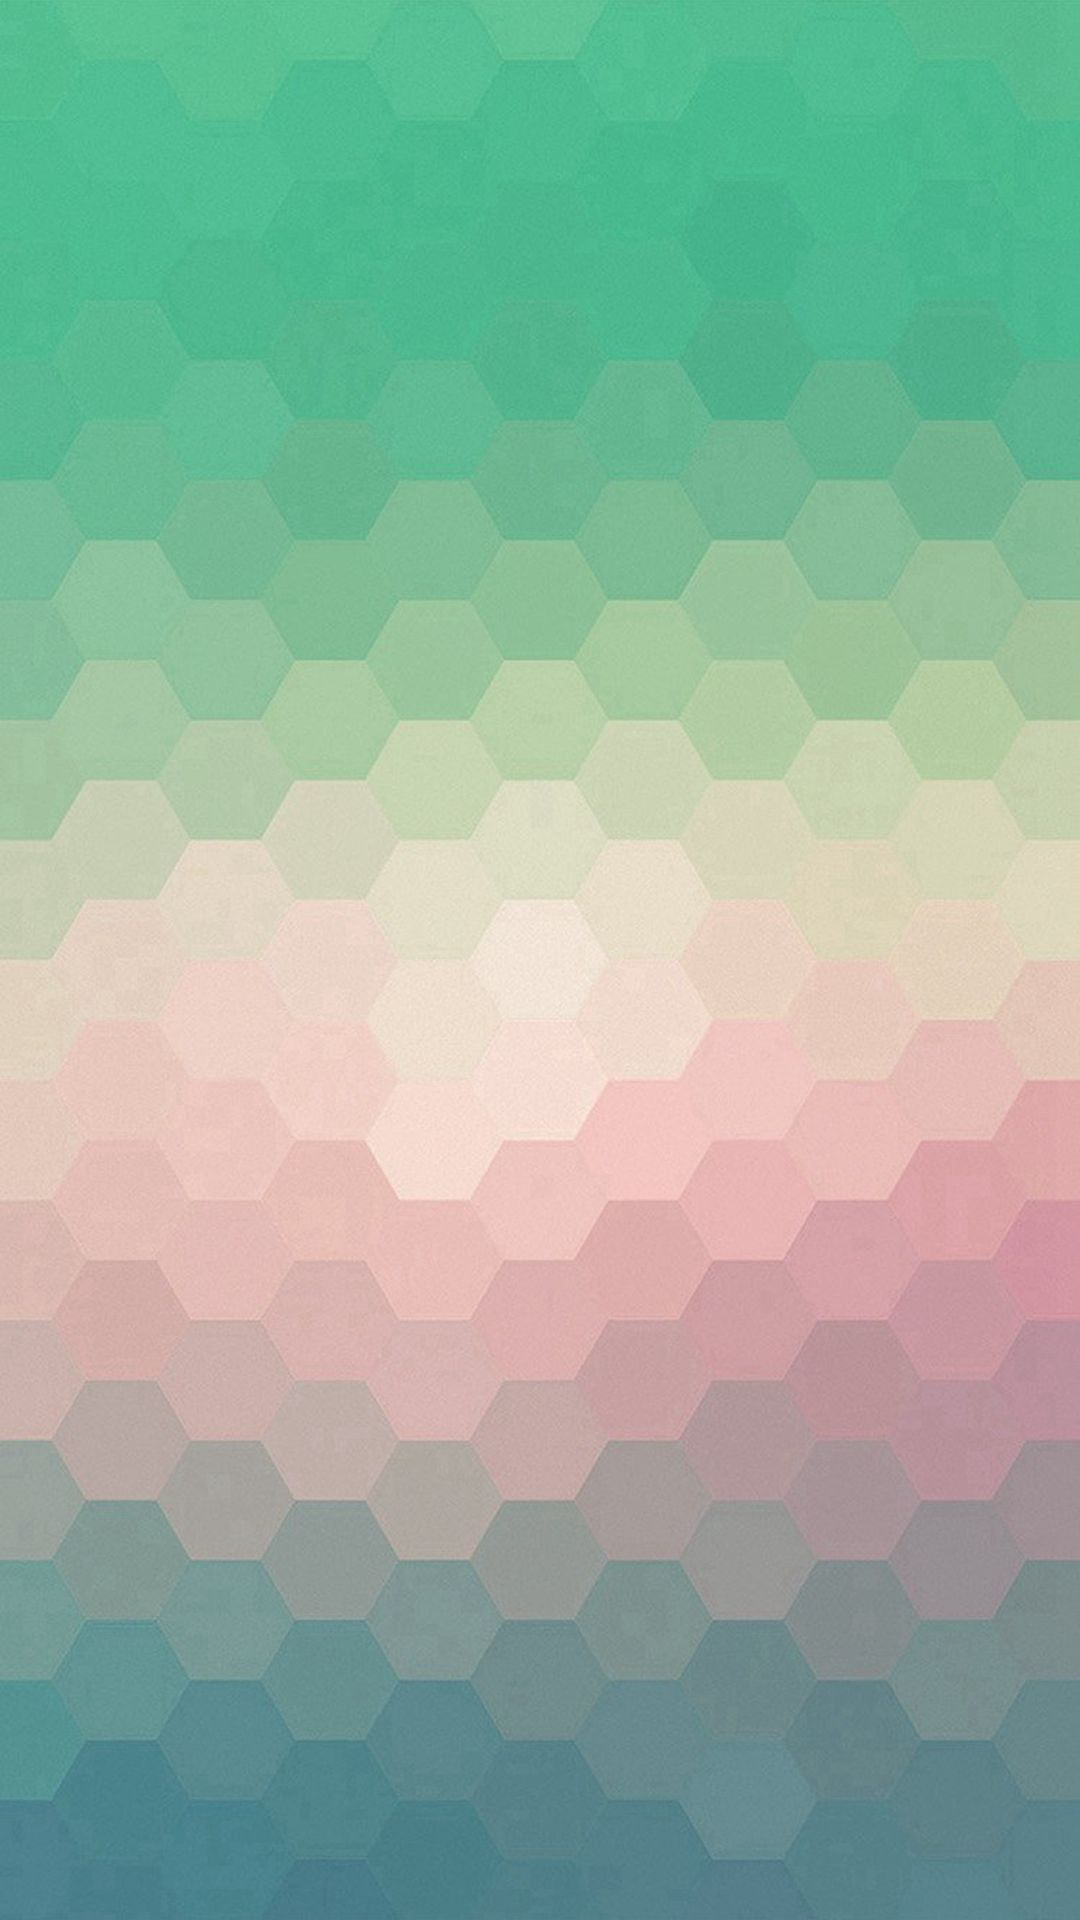 Hexagon Green Red Pattern Background Iphone 8 Wallpaper Abstract Wallpaper Pink And Green Wallpaper Iphone Wallpaper